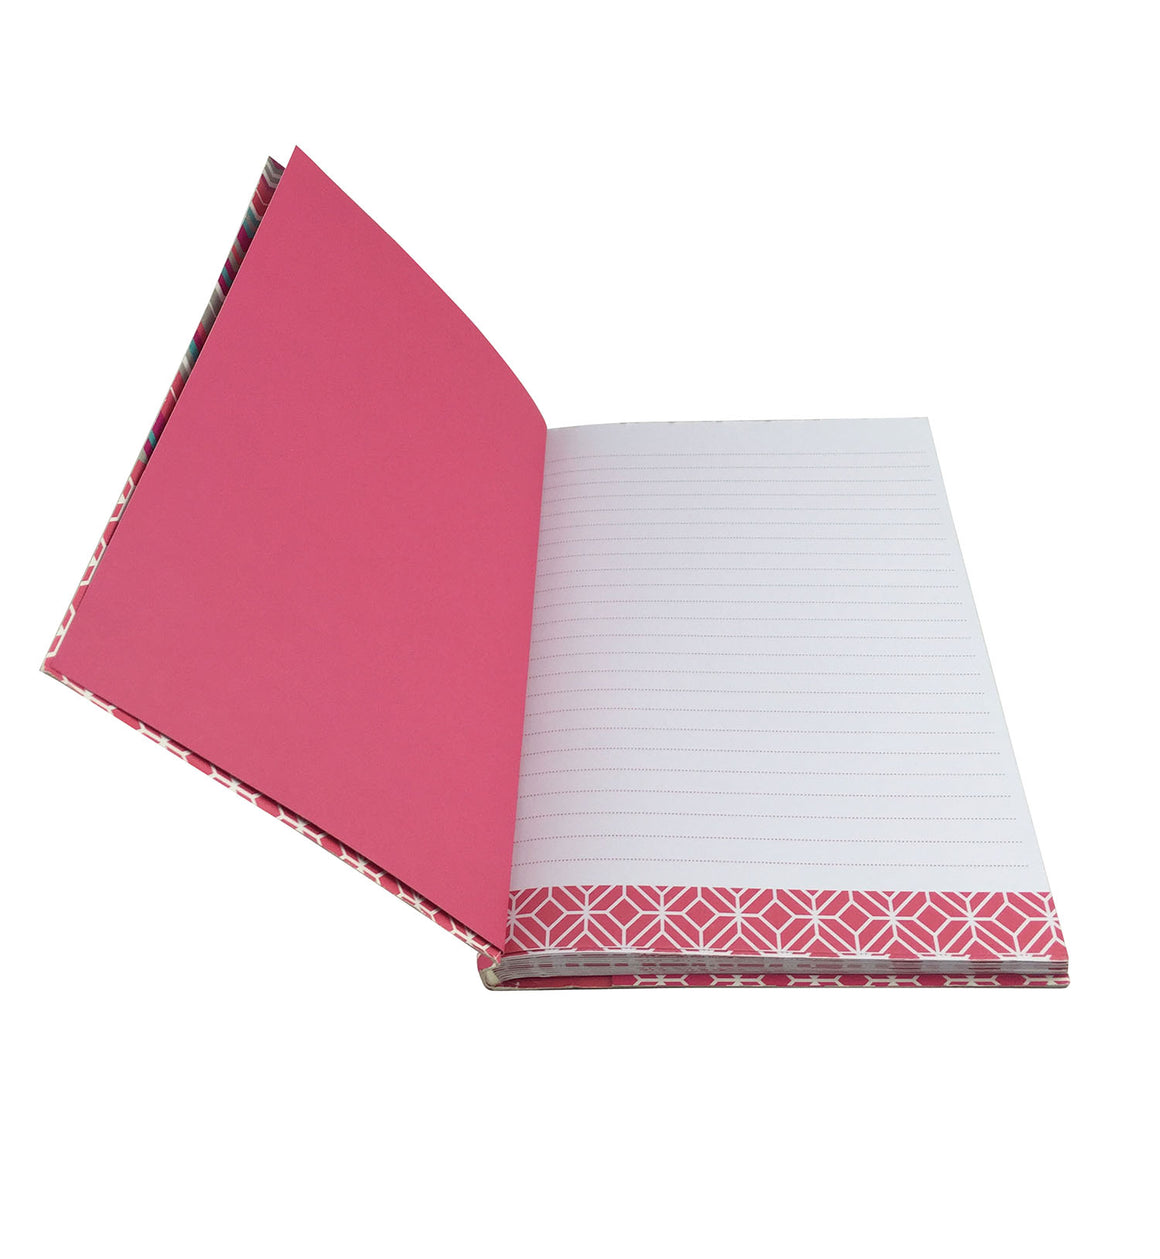 Custom Made All Size Soft Bound Notebook